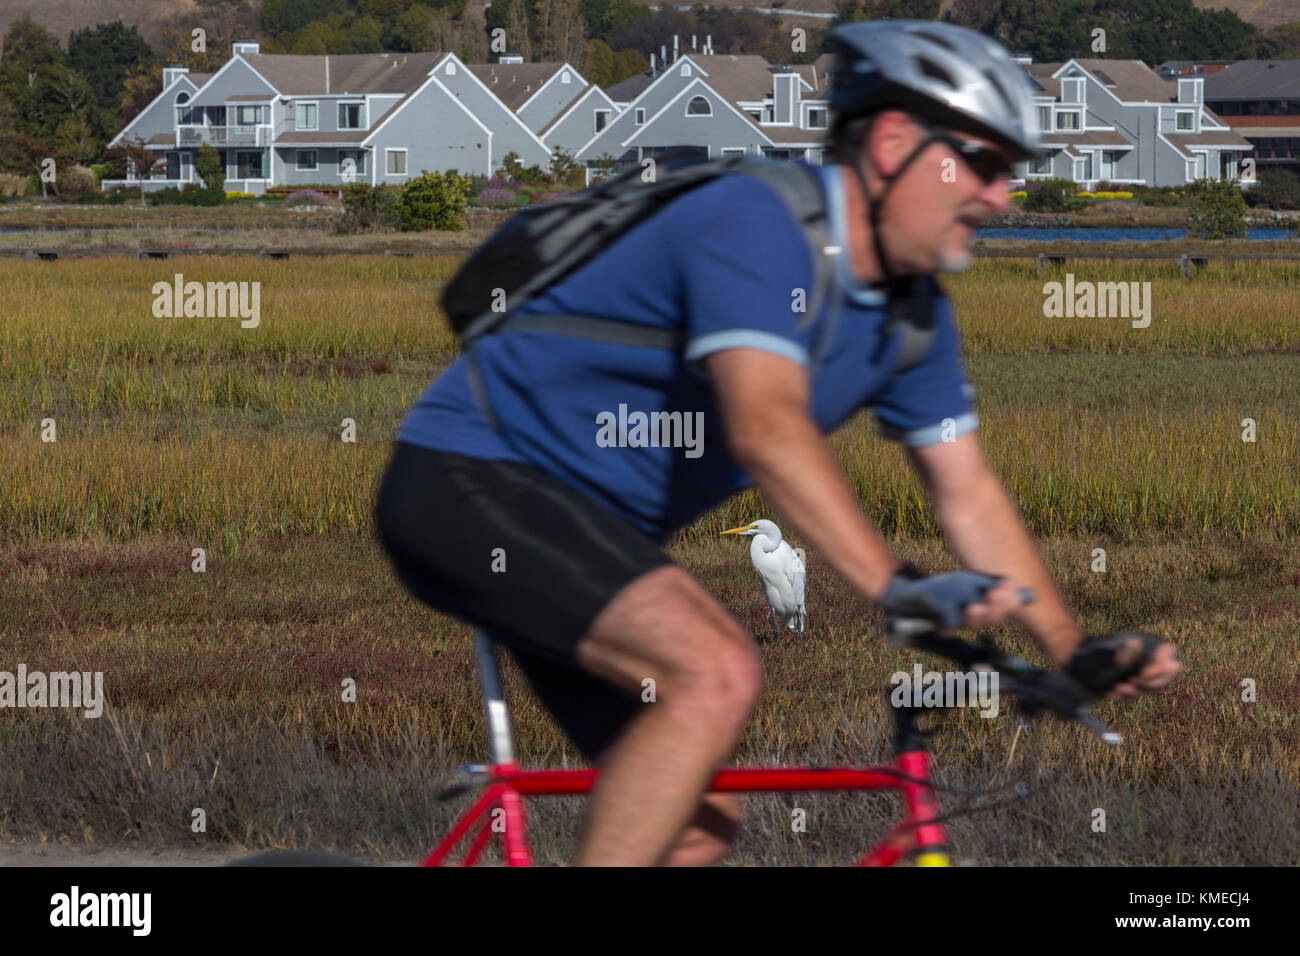 cyclist and egret in marsh in background,Bay trail,Bothin Marsh,Mill Valley,California,USA - Stock Image